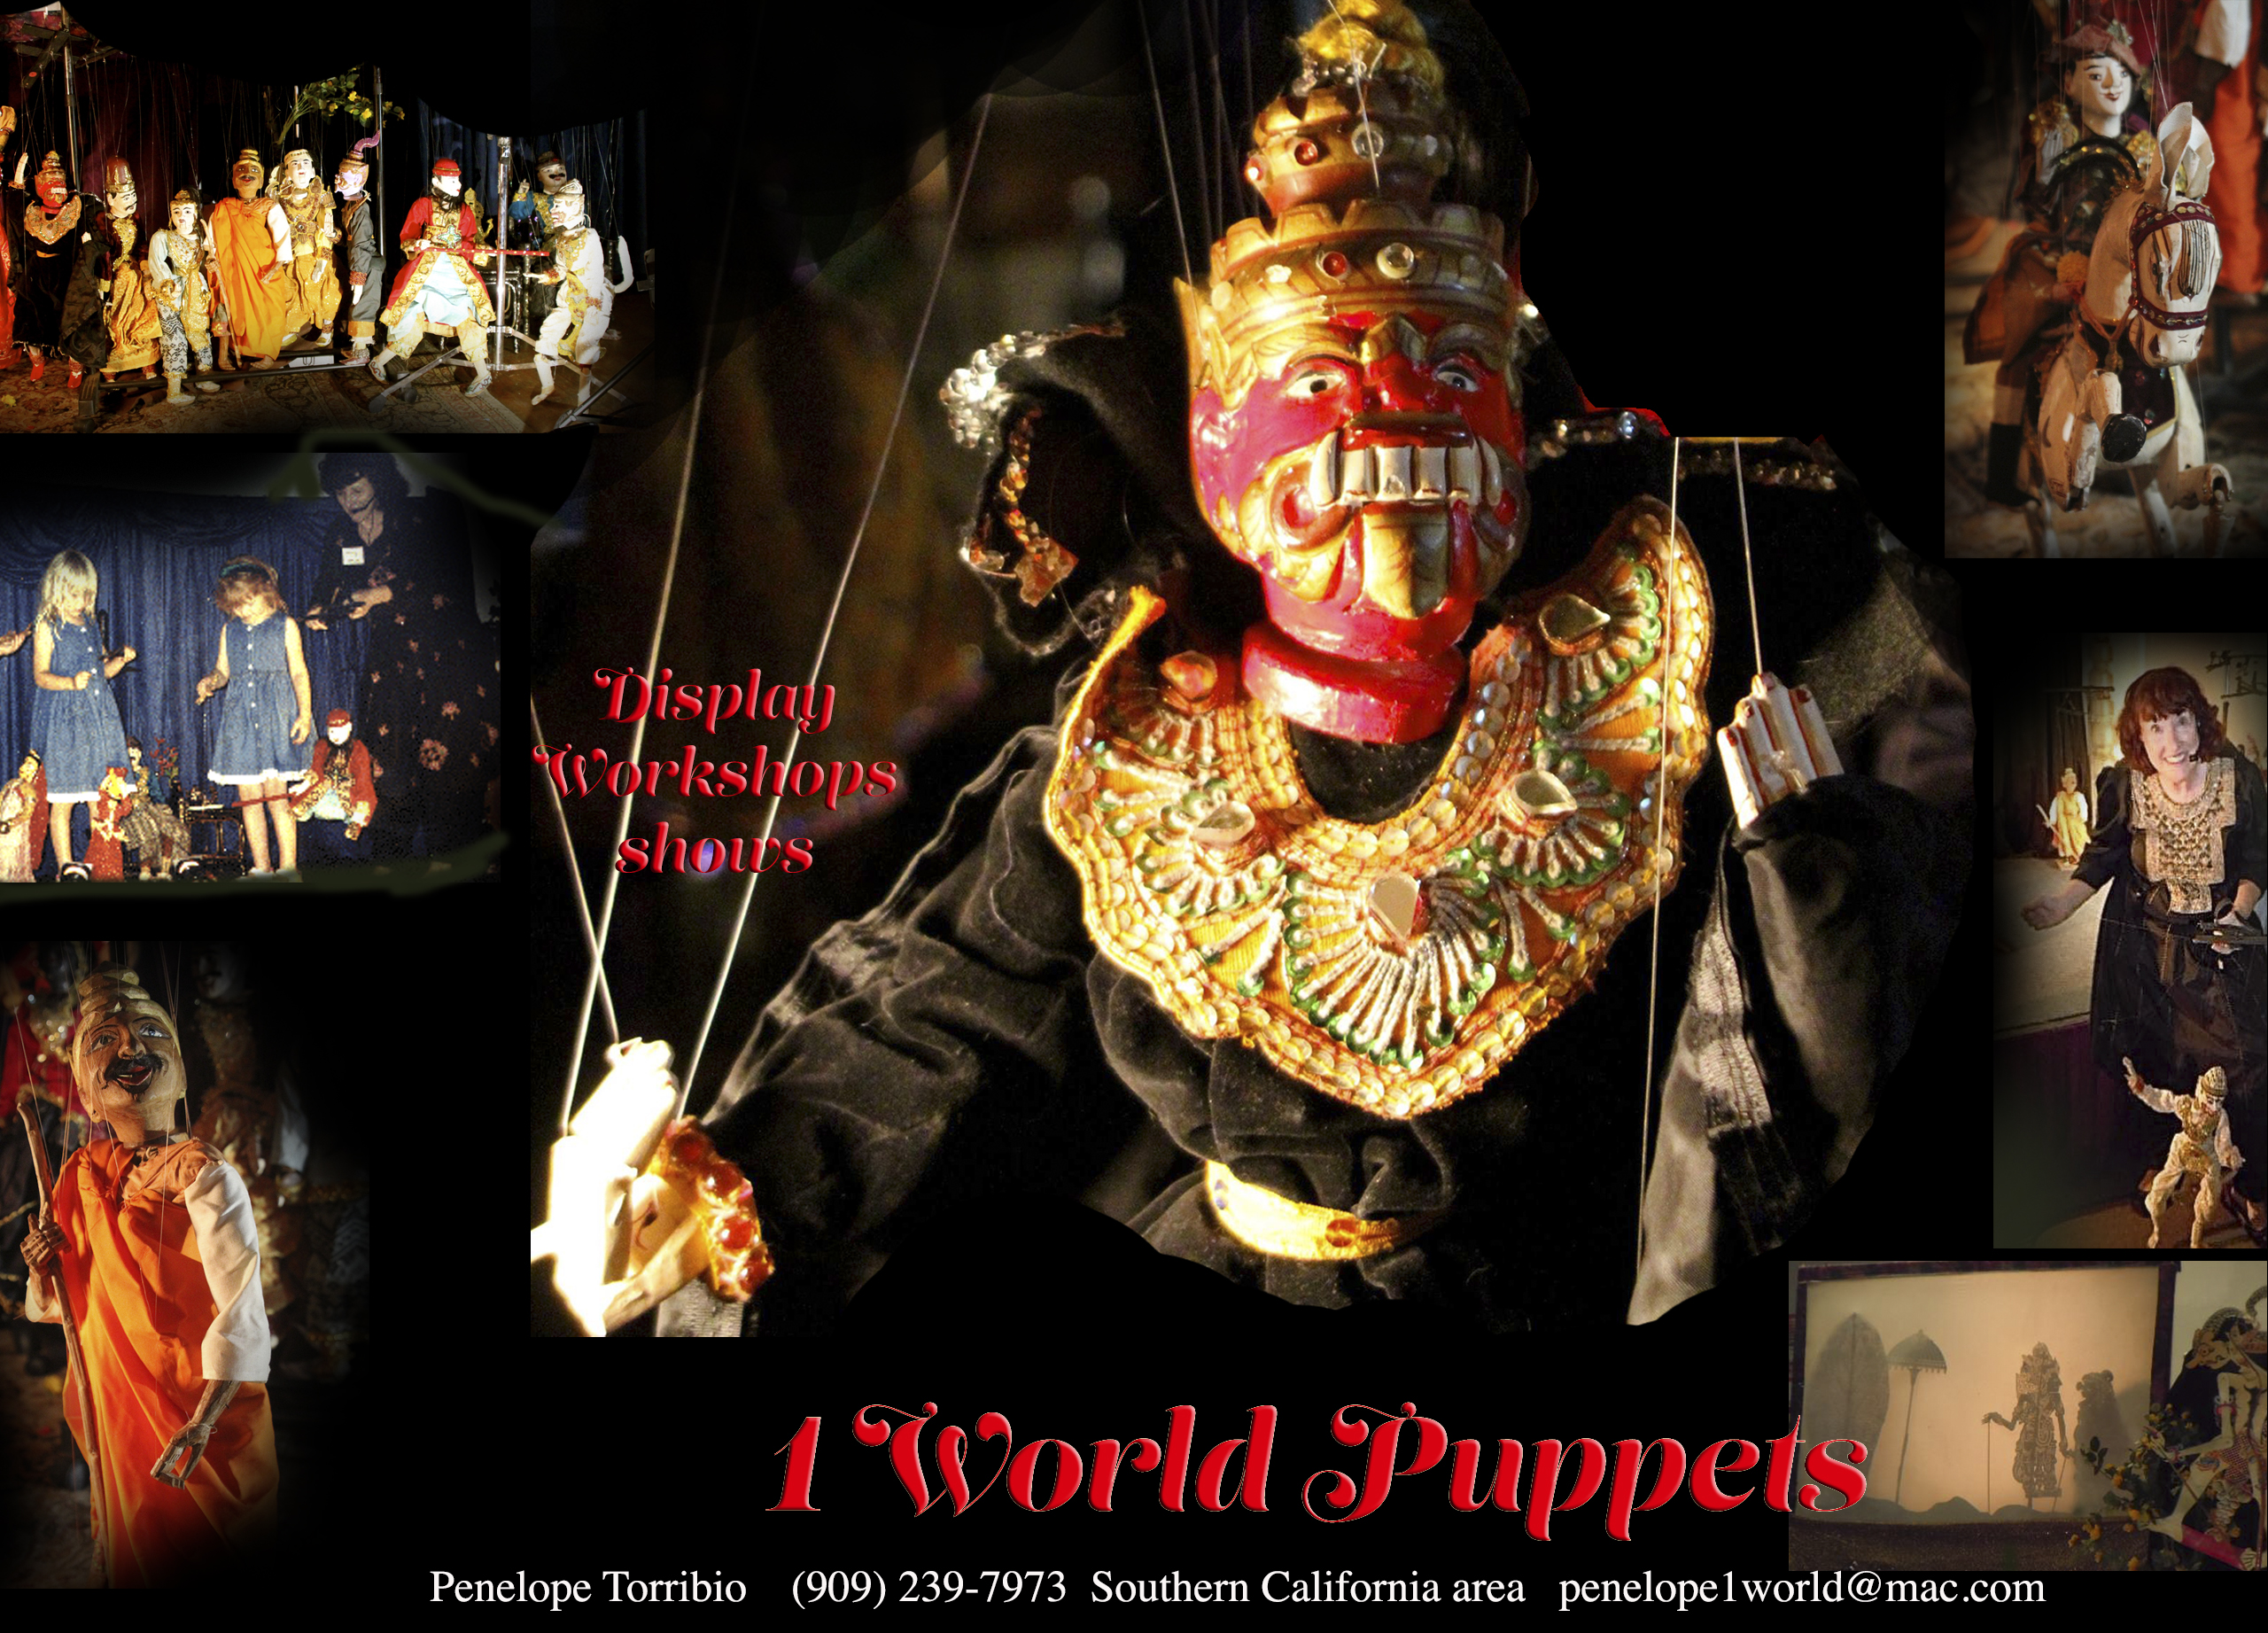 1 world Puppets postcard